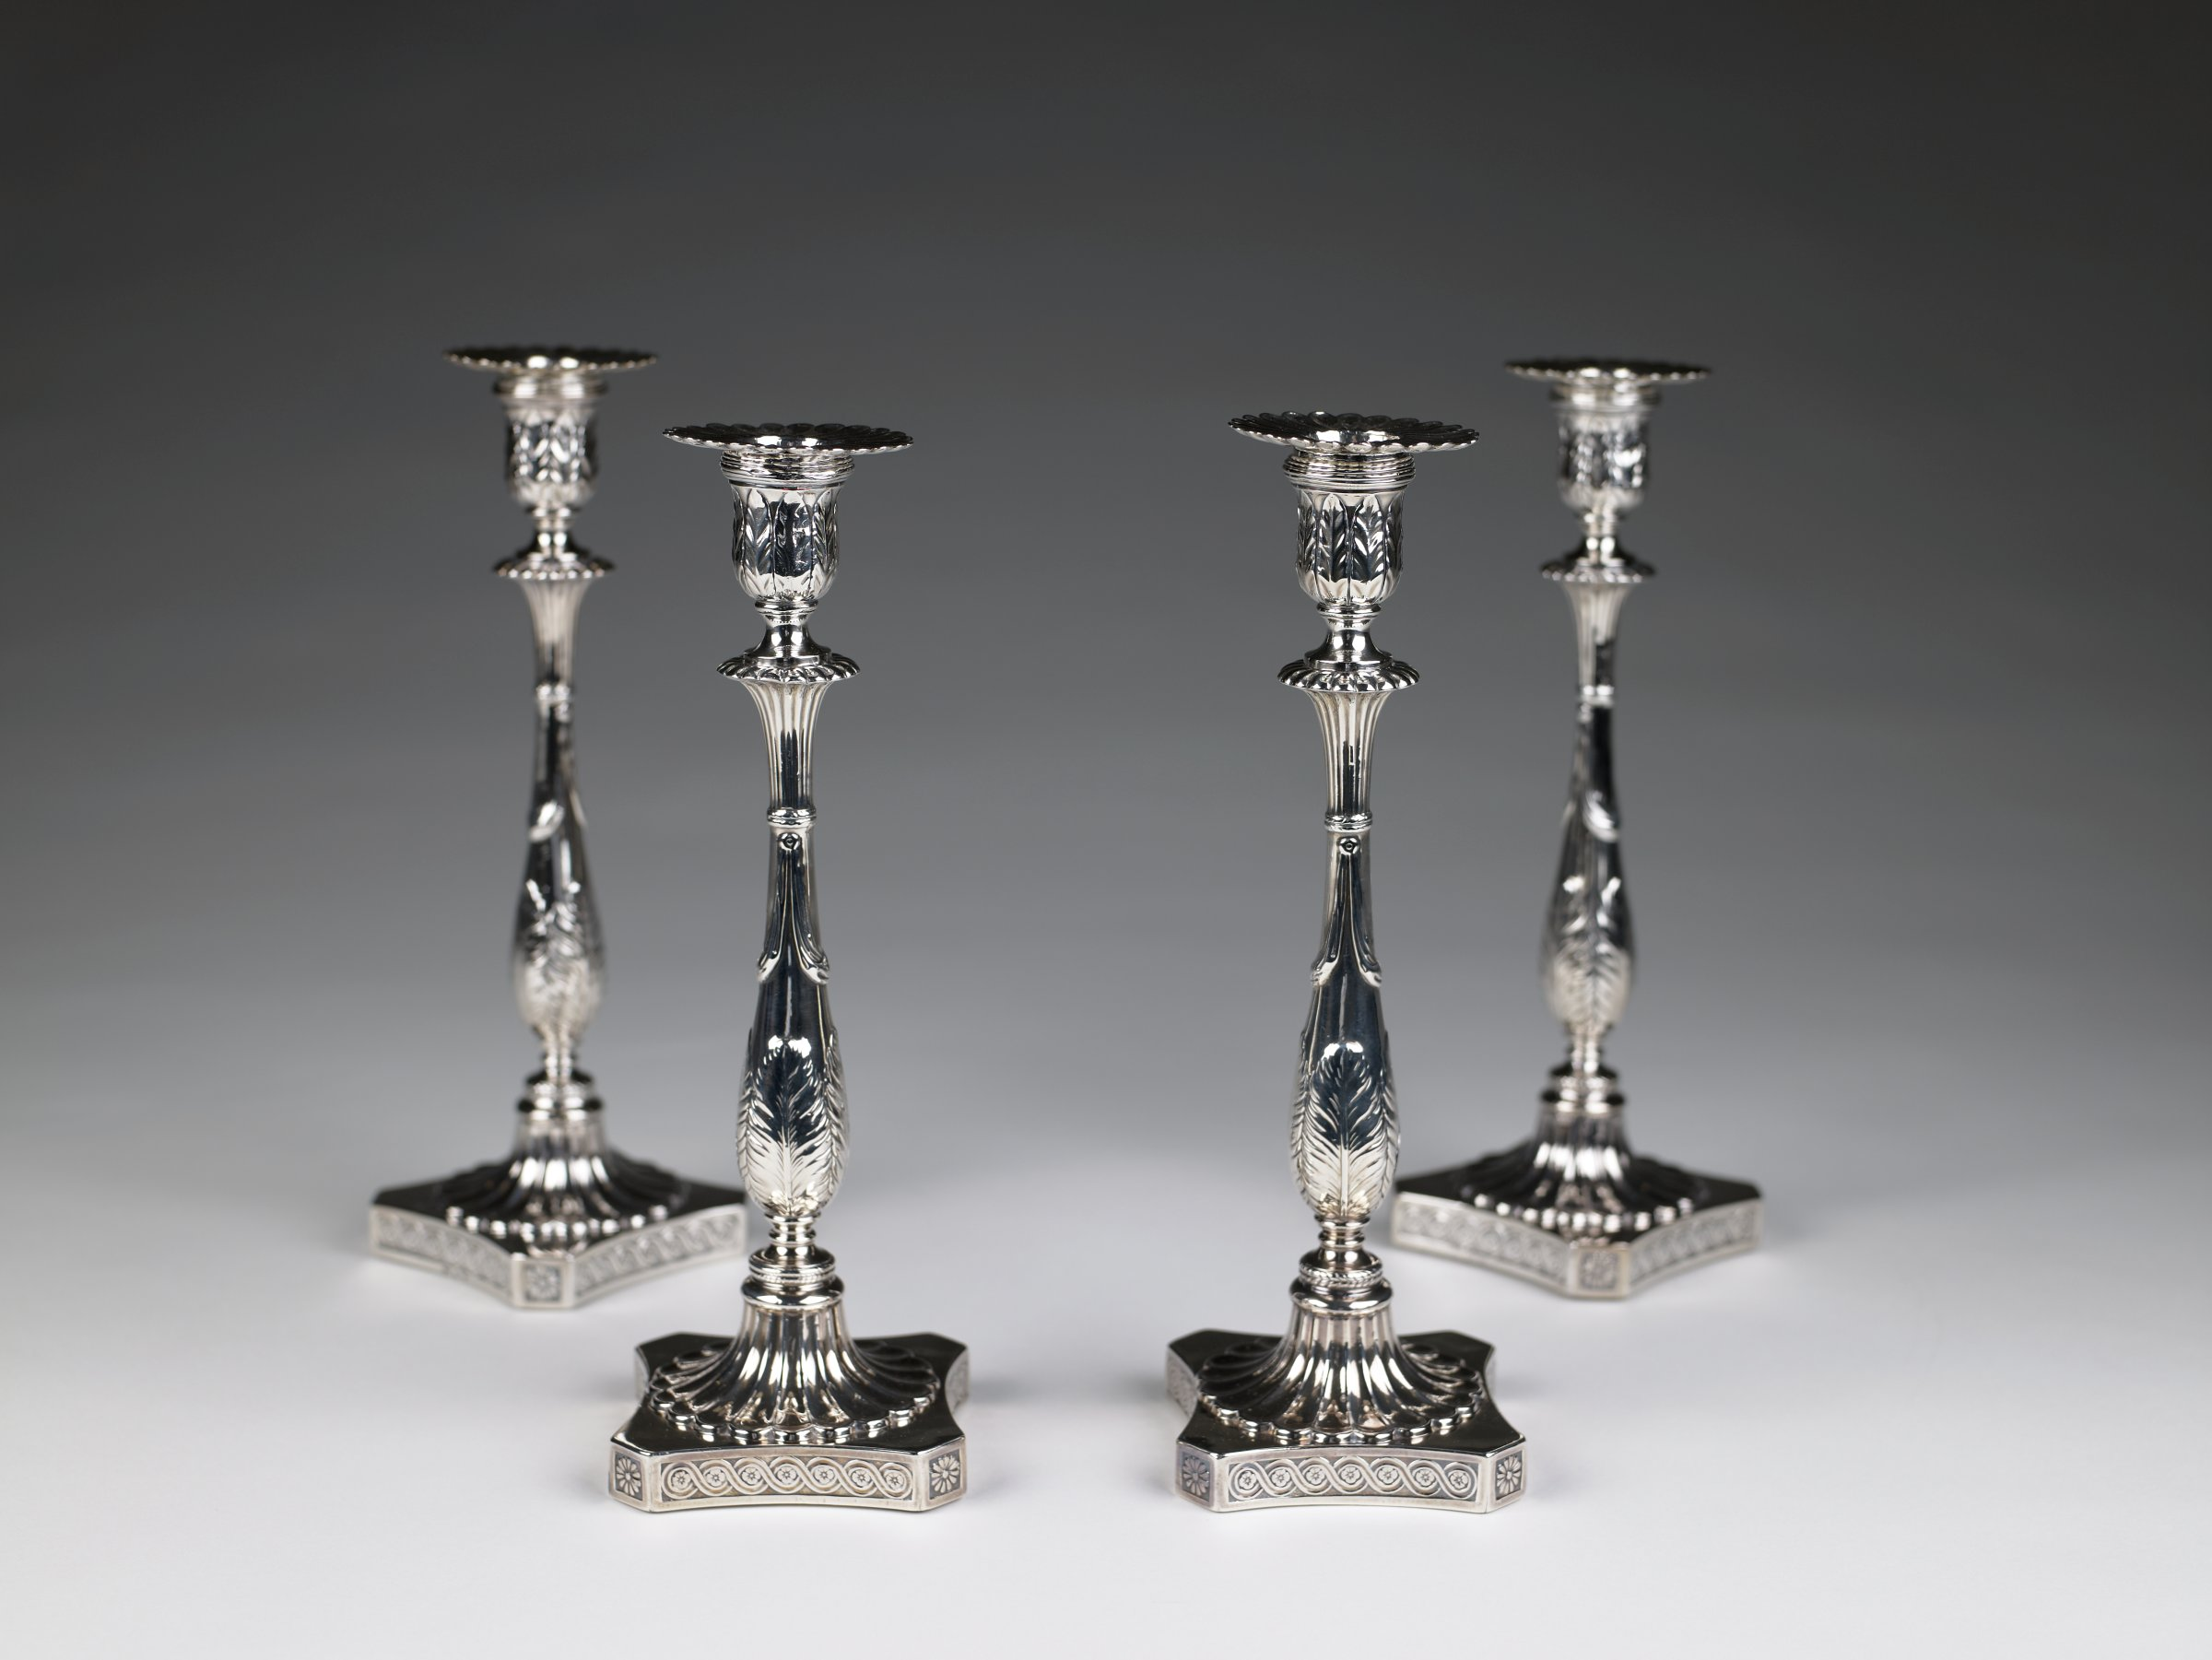 Rare set of four silver candlesticks each on a square plinth with canted corners chased with guilloche on the sides and flowers on the edges, the fluted foot rises to a baluster-shaped stem decorated with palmetto leaves and swags, the upper stem likewise fluted and supporting an urn-shaped socket decorated with similar leaves, with removable fluted nozzle